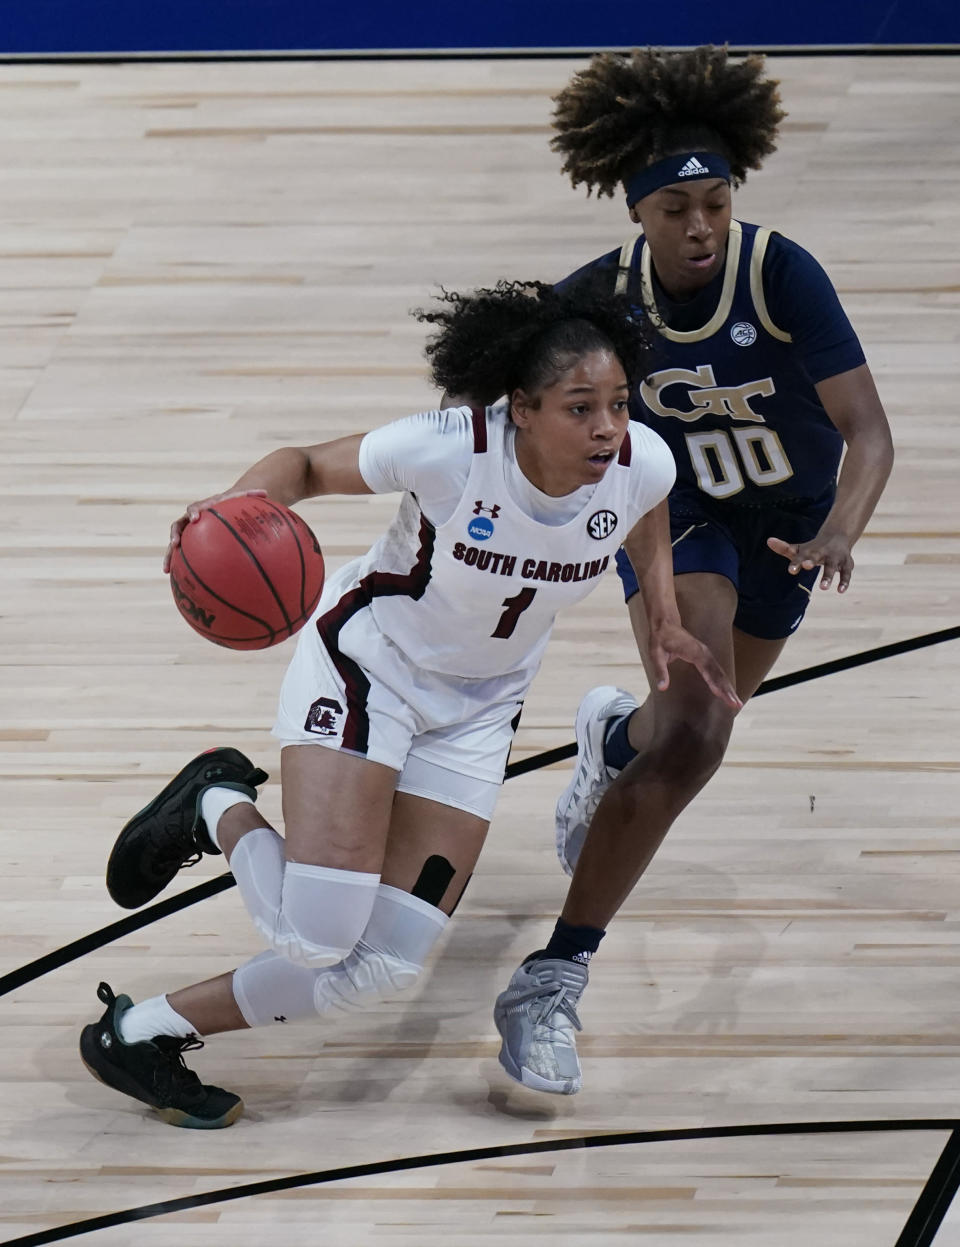 South Carolina guard Zia Cooke (1) drives around Georgia Tech guard Loyal McQueen (00) during the first half of a college basketball game in the Sweet Sixteen round of the women's NCAA tournament at the Alamodome in San Antonio, Sunday, March 28, 2021. (AP Photo/Eric Gay)